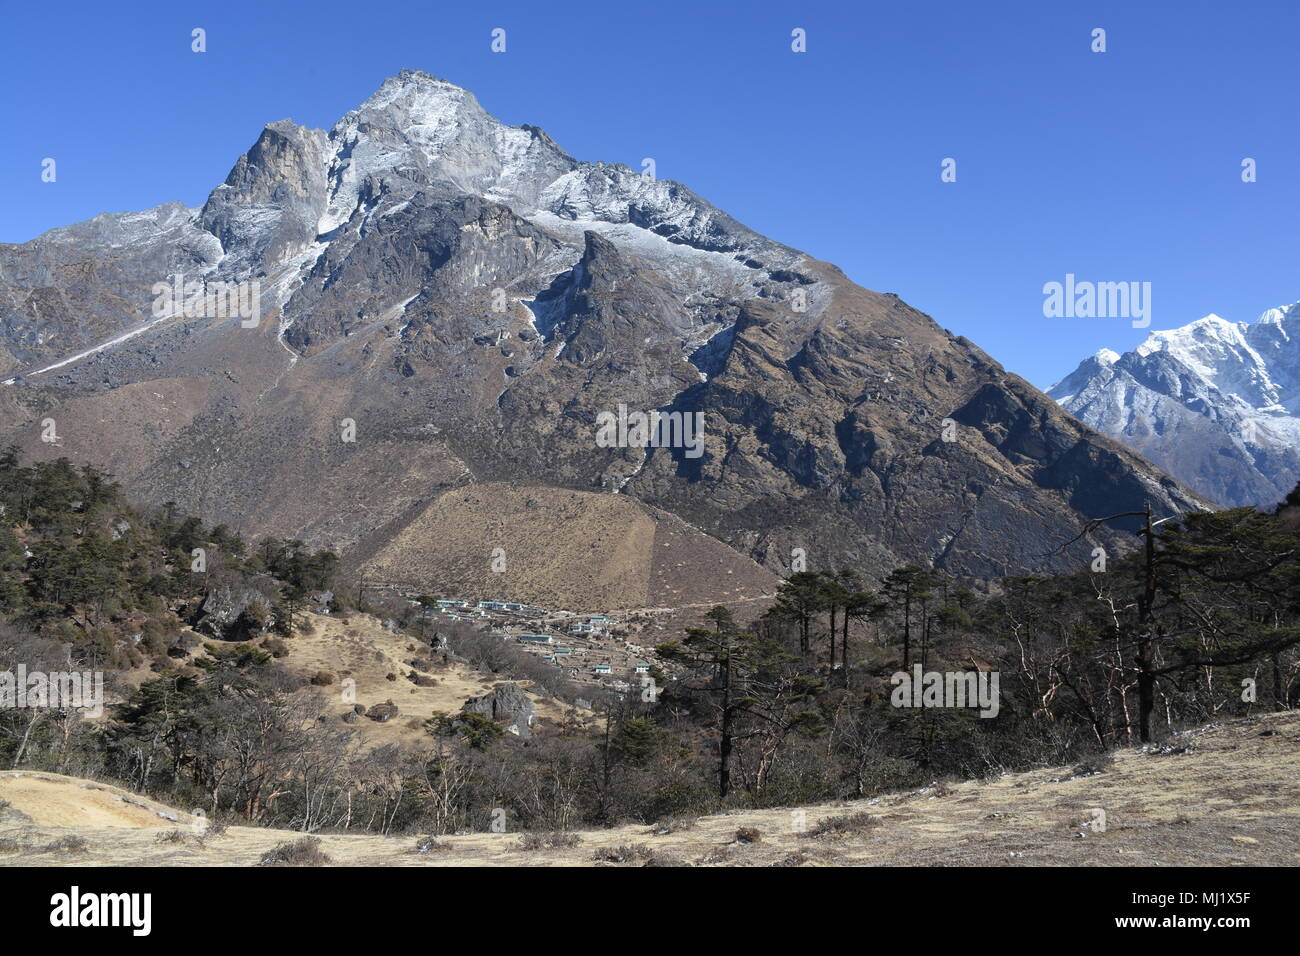 Khumjung Village and Khumbila in the background - Stock Image